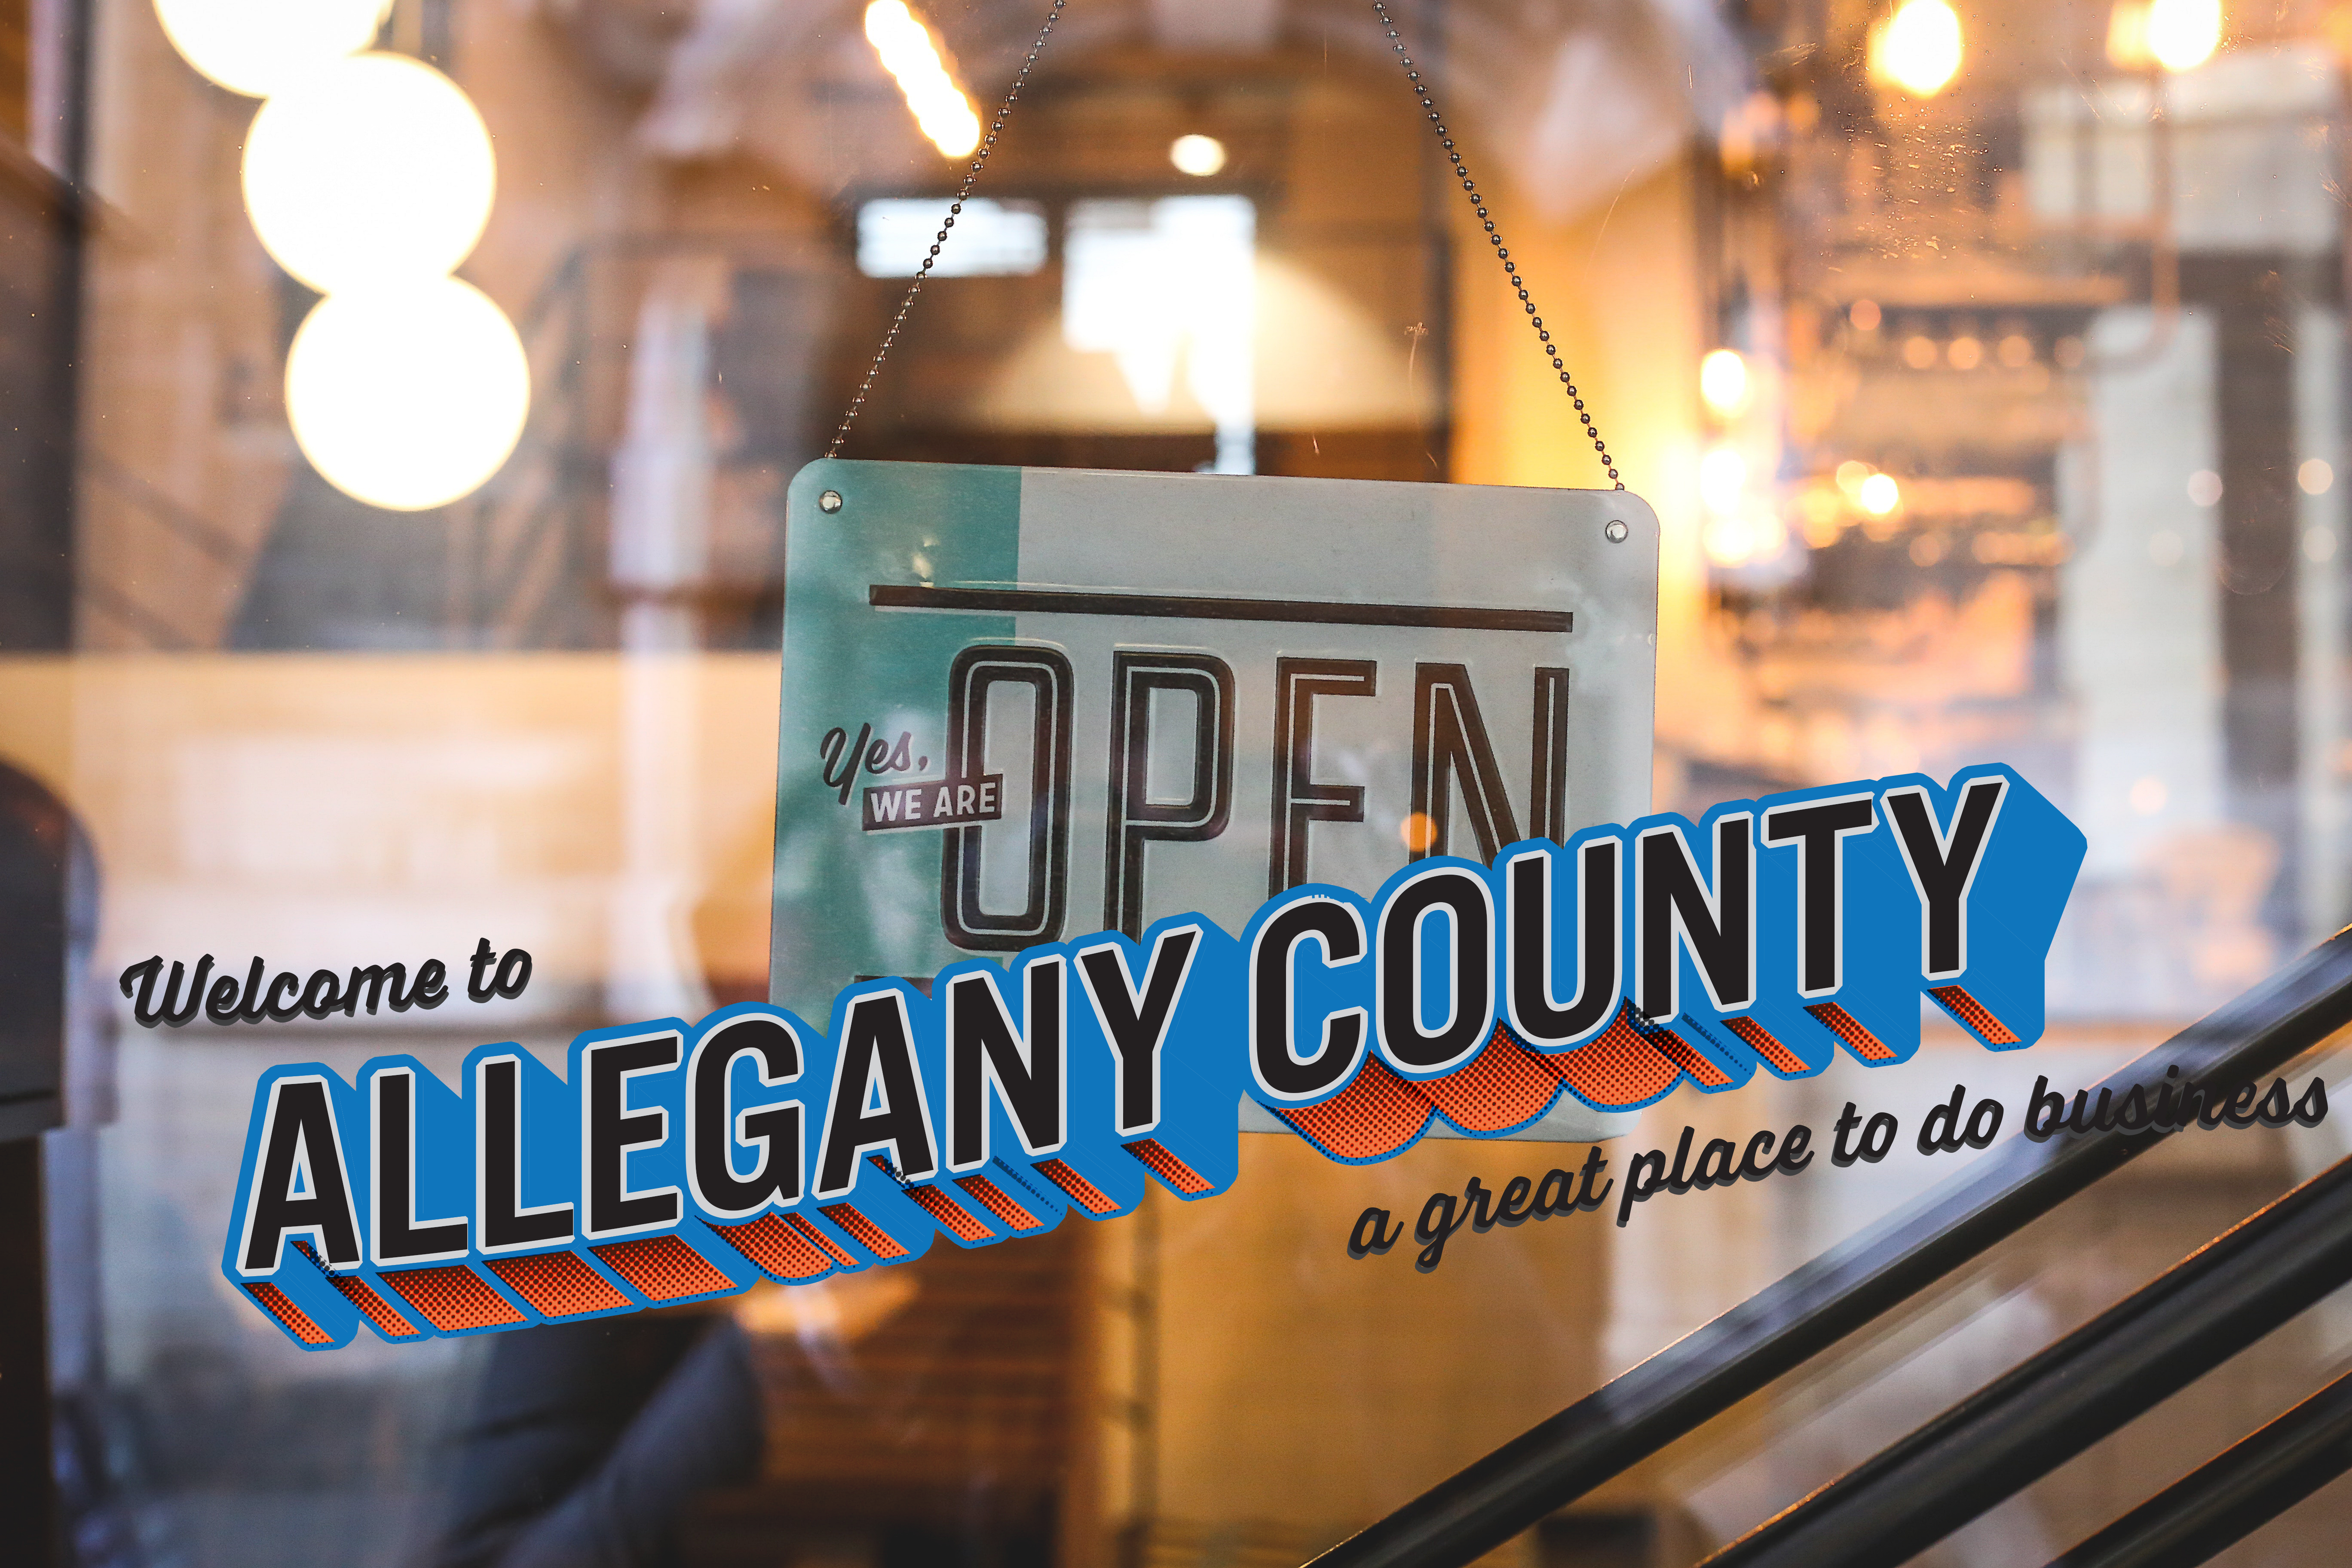 https://www.alleganyco.com/wp-content/uploads/Welcome-to-Allegany-County_Business.png